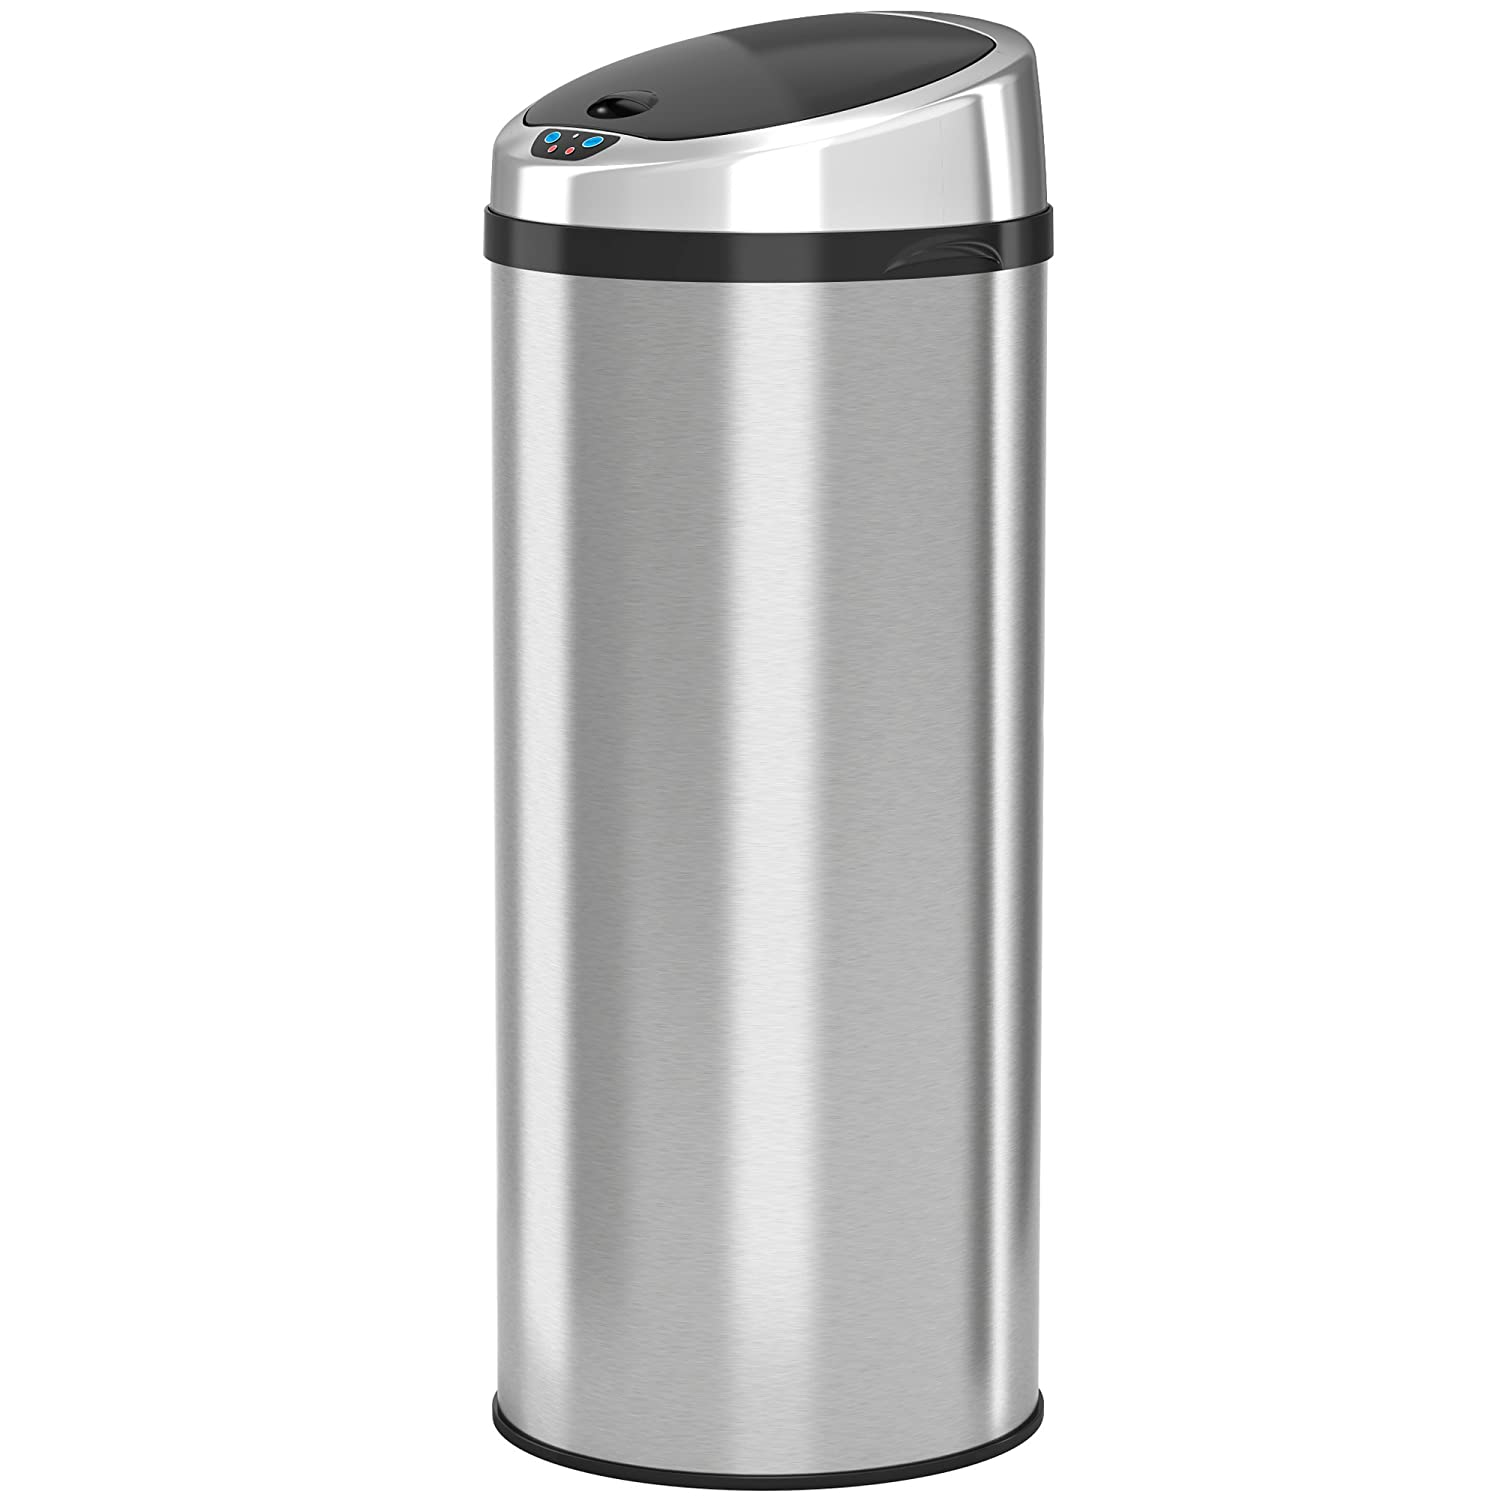 iTouchless Automatic Touchless Sensor Kitchen Trash Can - Stainless Steel   13 Gallon / 49 Liter